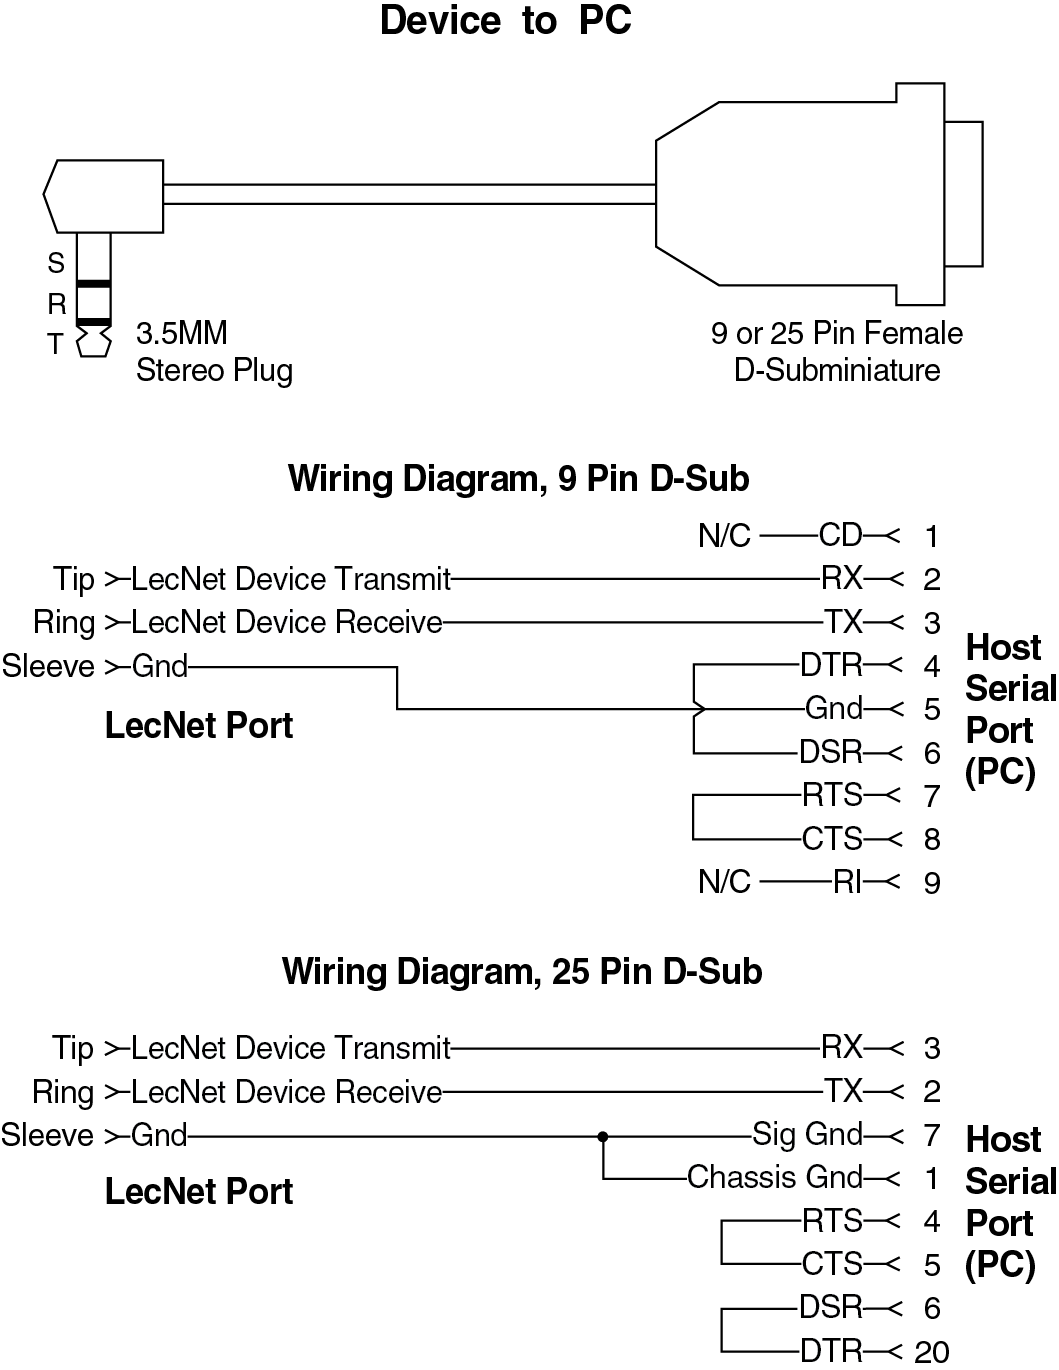 9 pin connector diagram vy commodore wiring rs232 pinout free engine image for user